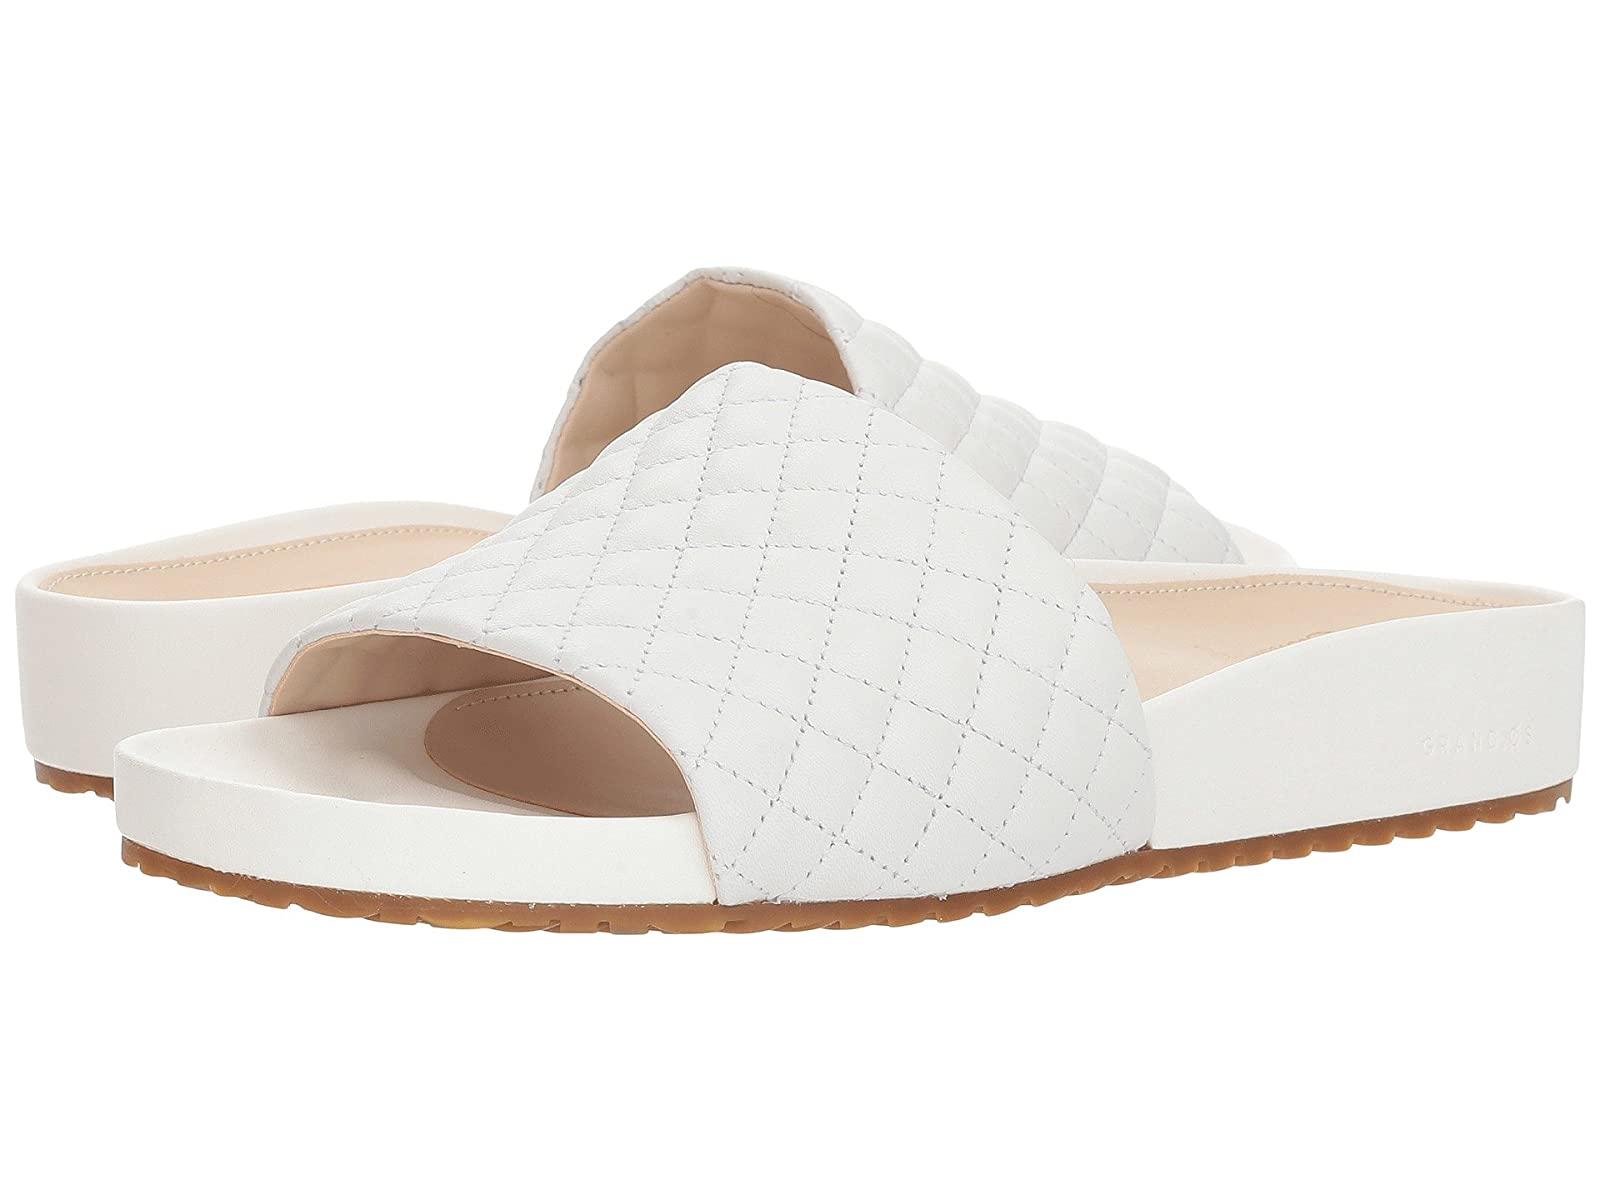 Cole Haan G.OS Pinch Montauk SlideComfortable and distinctive shoes